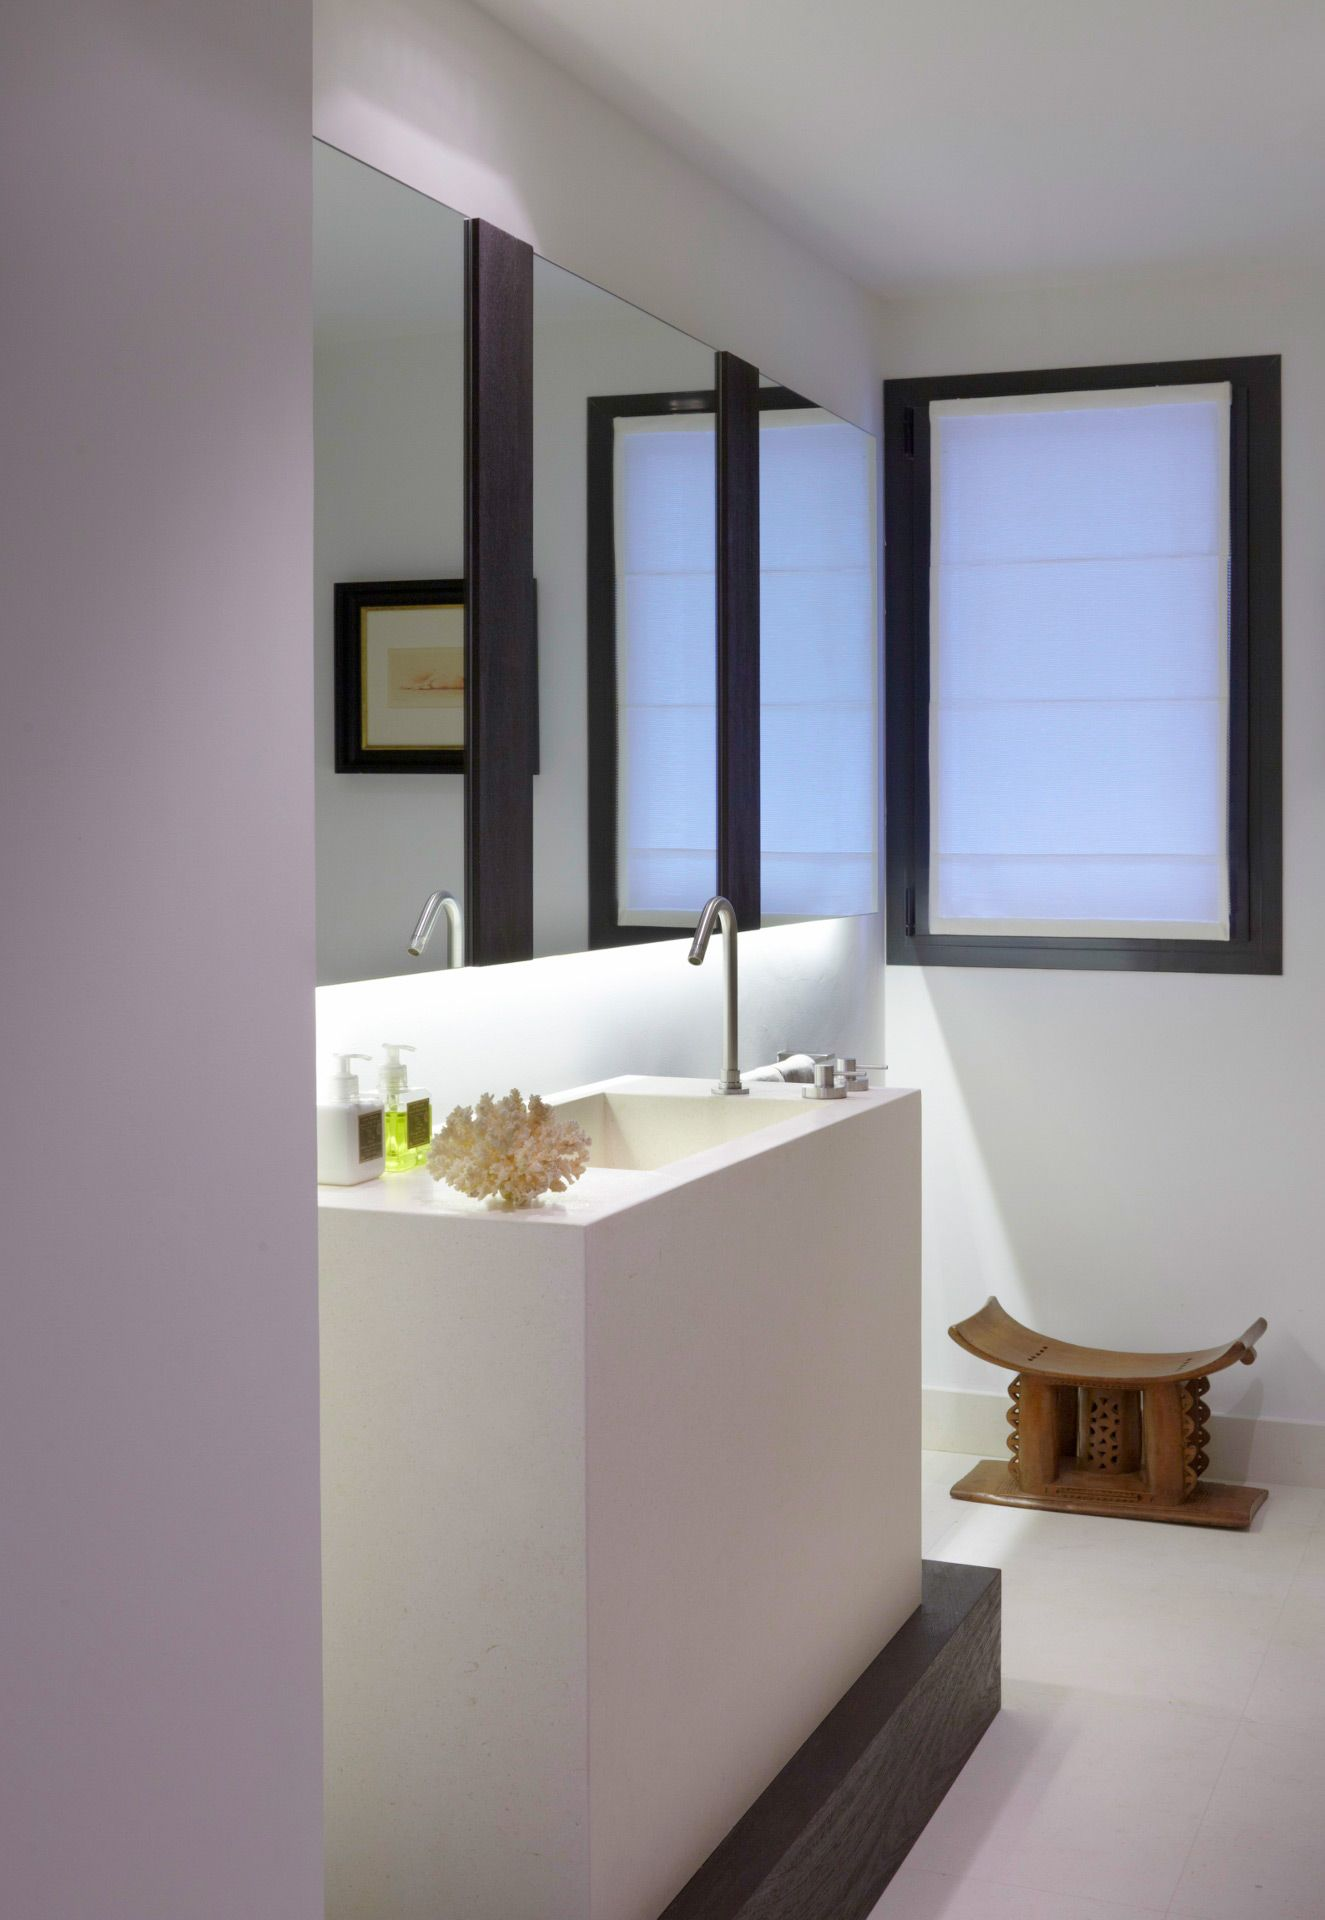 bathroom designs london based luxury interior design international residential and commercial projects by award winning designer fiona